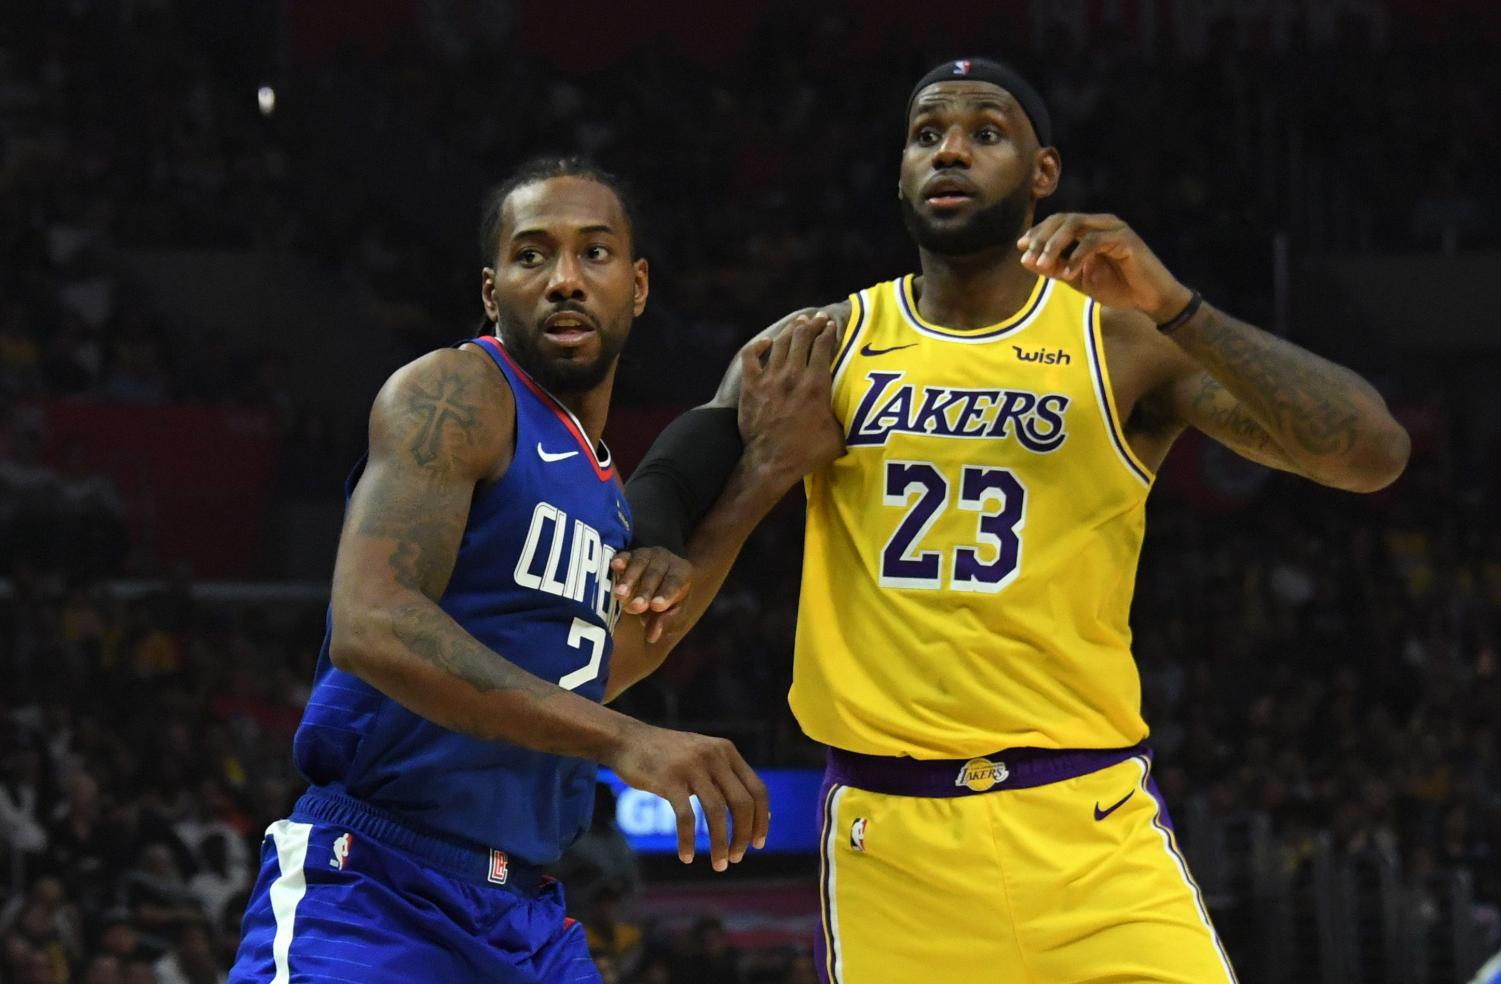 Lakers forward LeBron James fights for position against Clippers forward Kawhi Leonard.